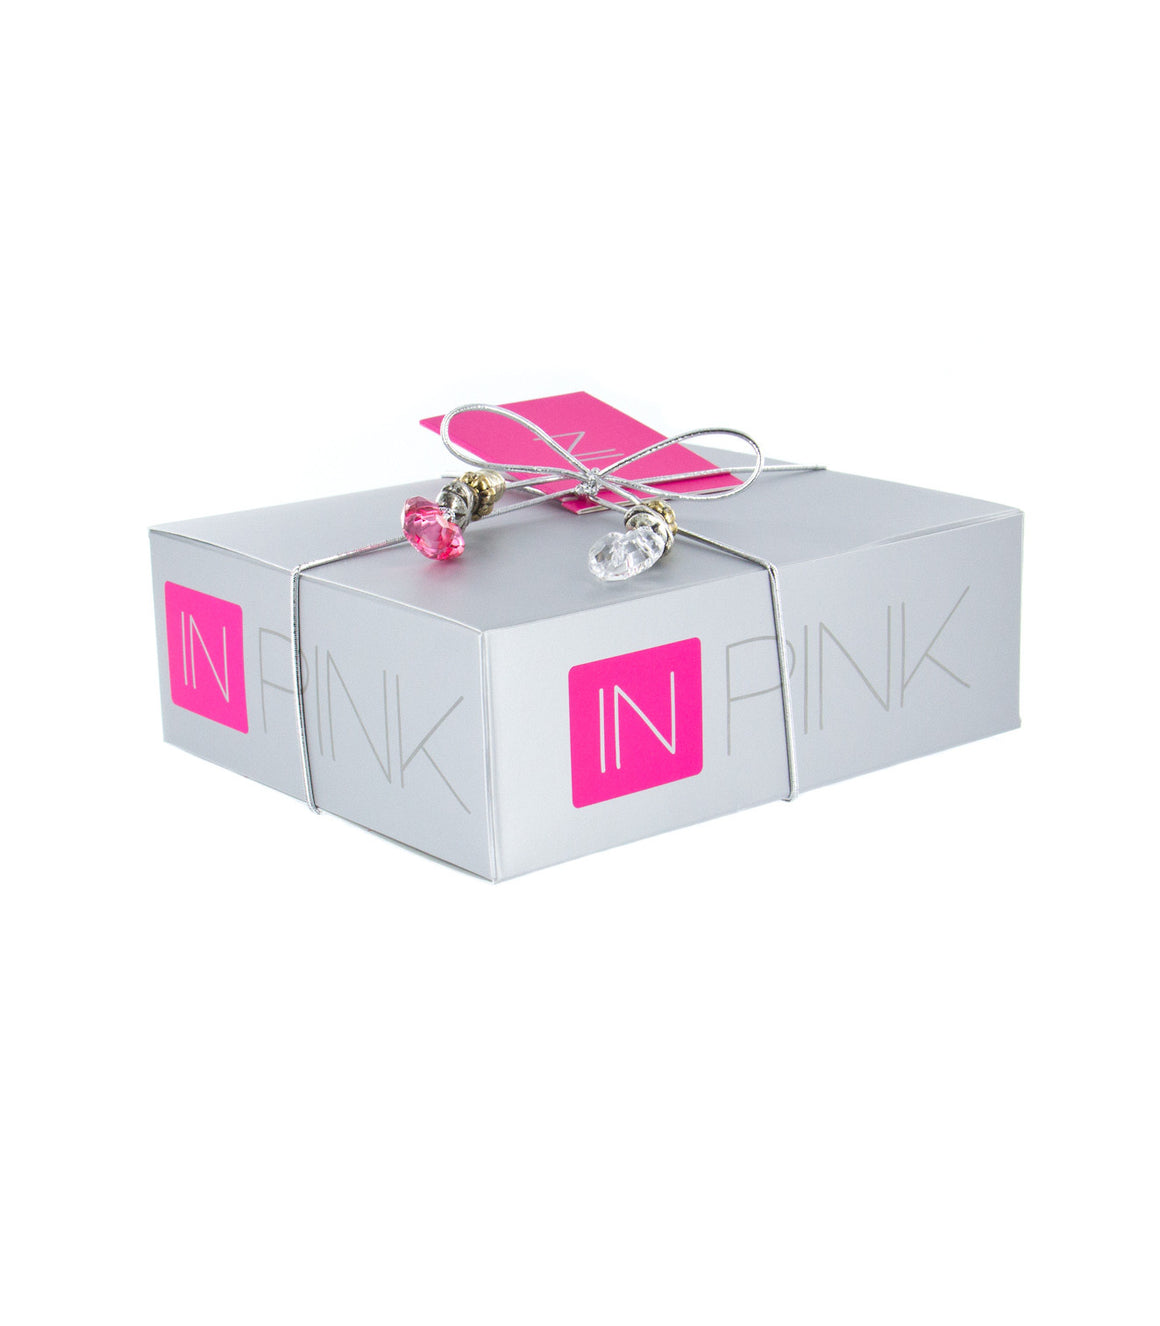 Large INPINK Gift Packaging